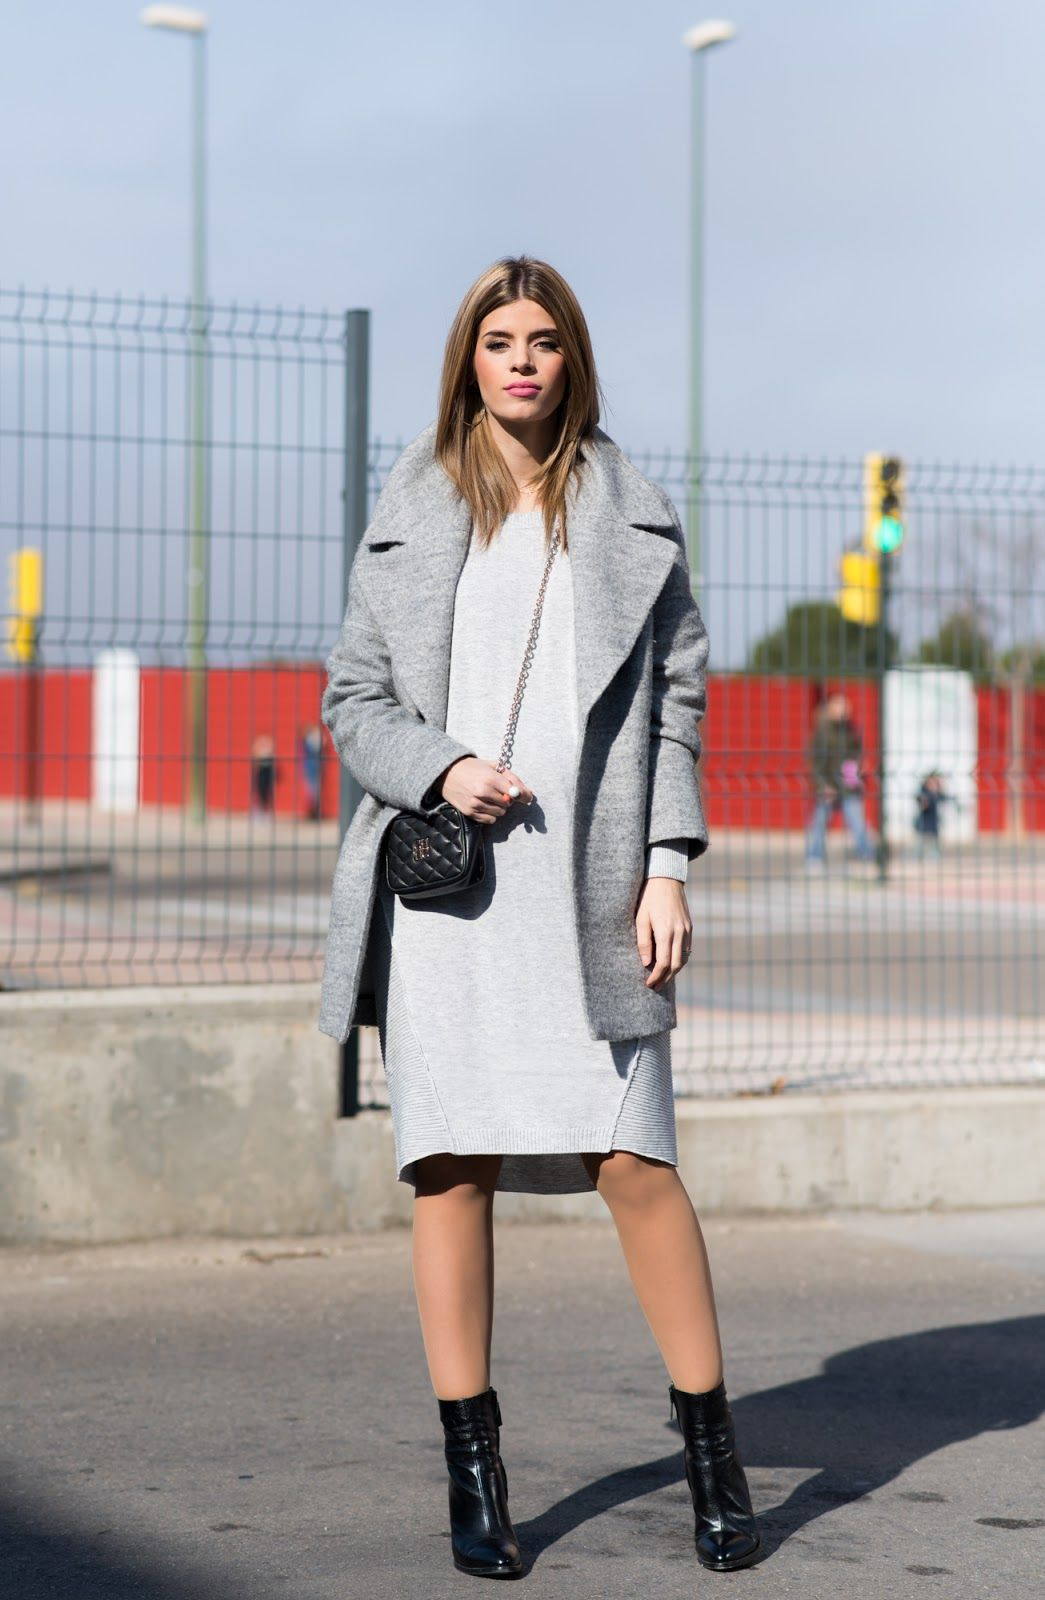 Ms Treinta - Fashion blogger - Blog de moda y tendencias by Alba.: MINIMAL